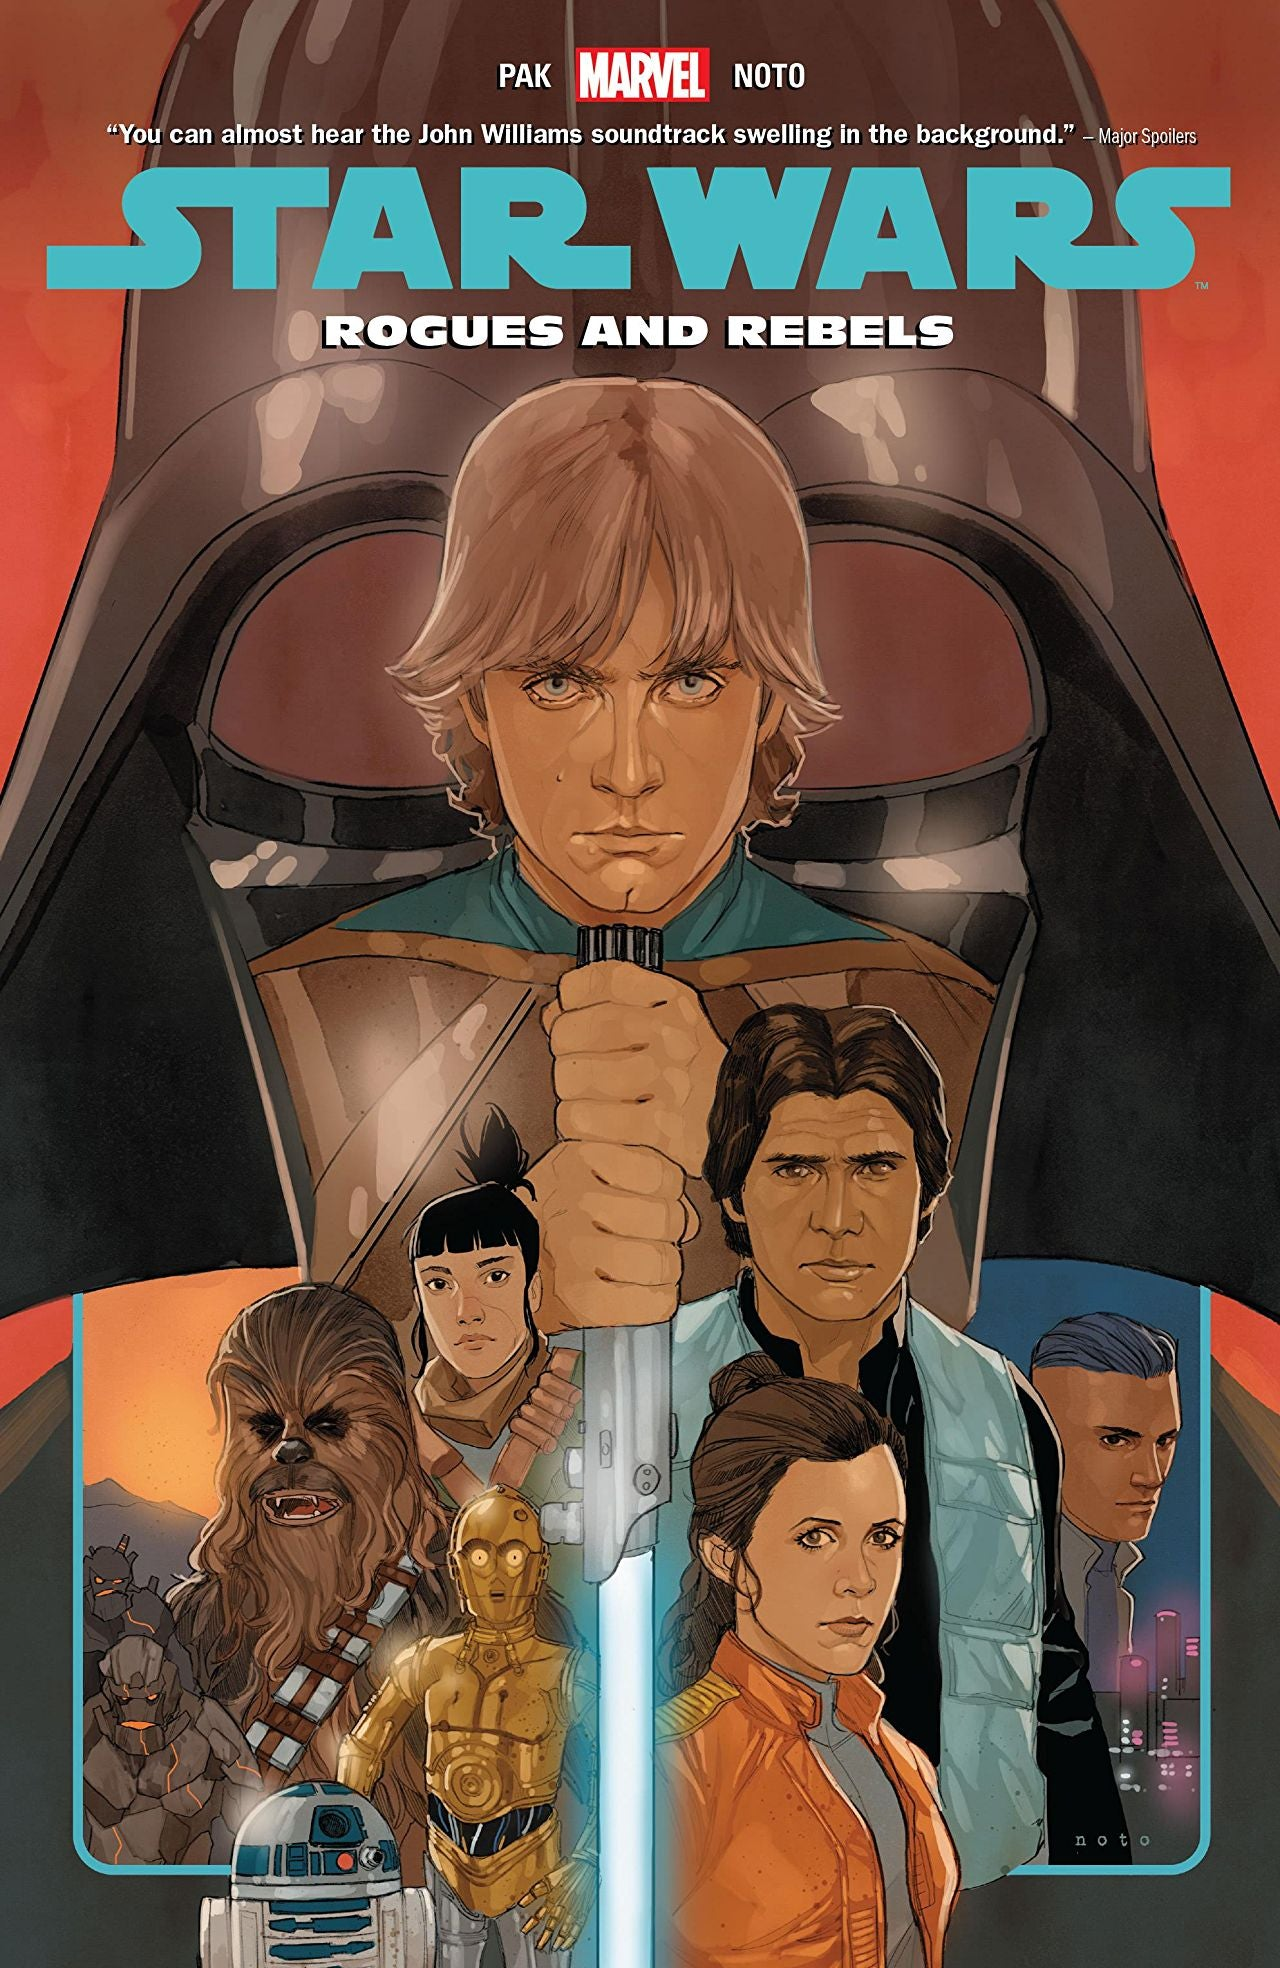 Star Wars (2015) Volume 13: Rogues and Rebels